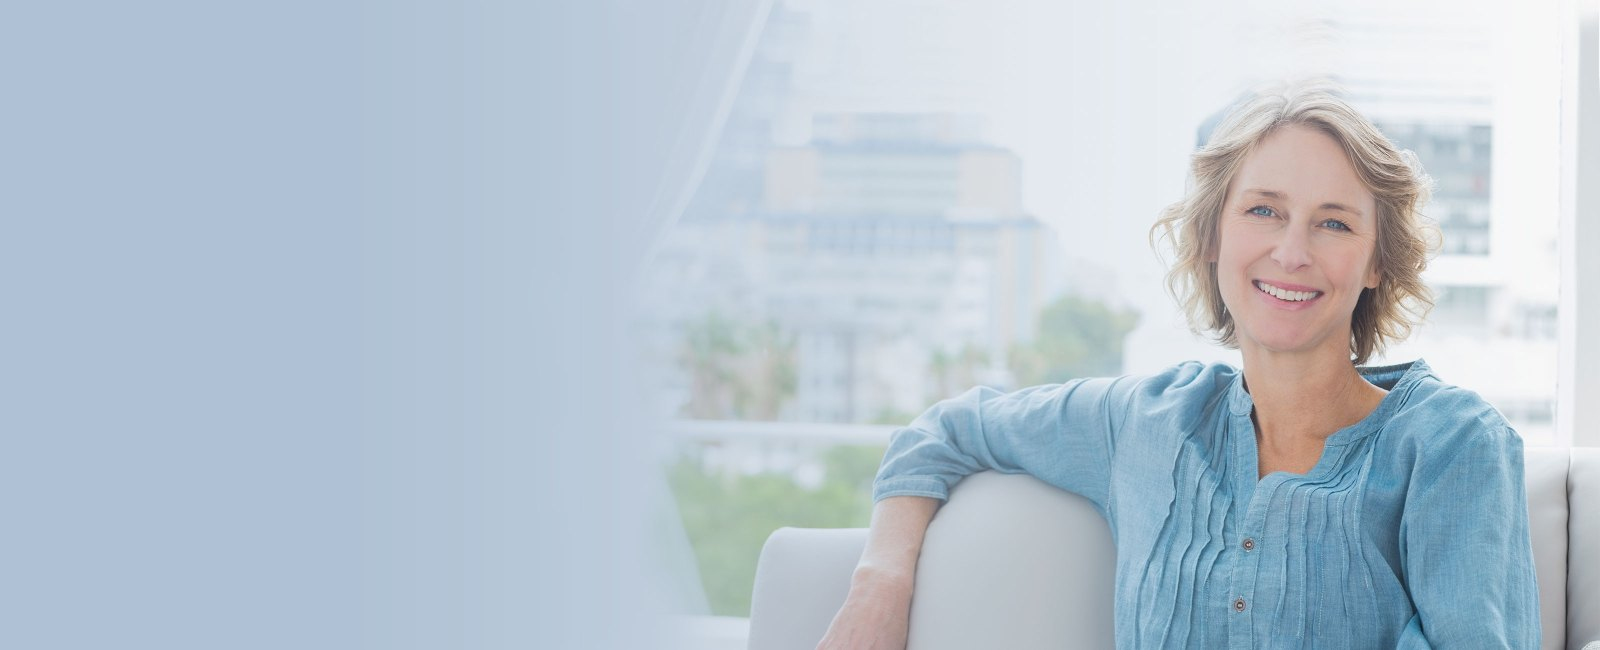 St  Louis Medical Clinic | In-House Illness Treatment & Care